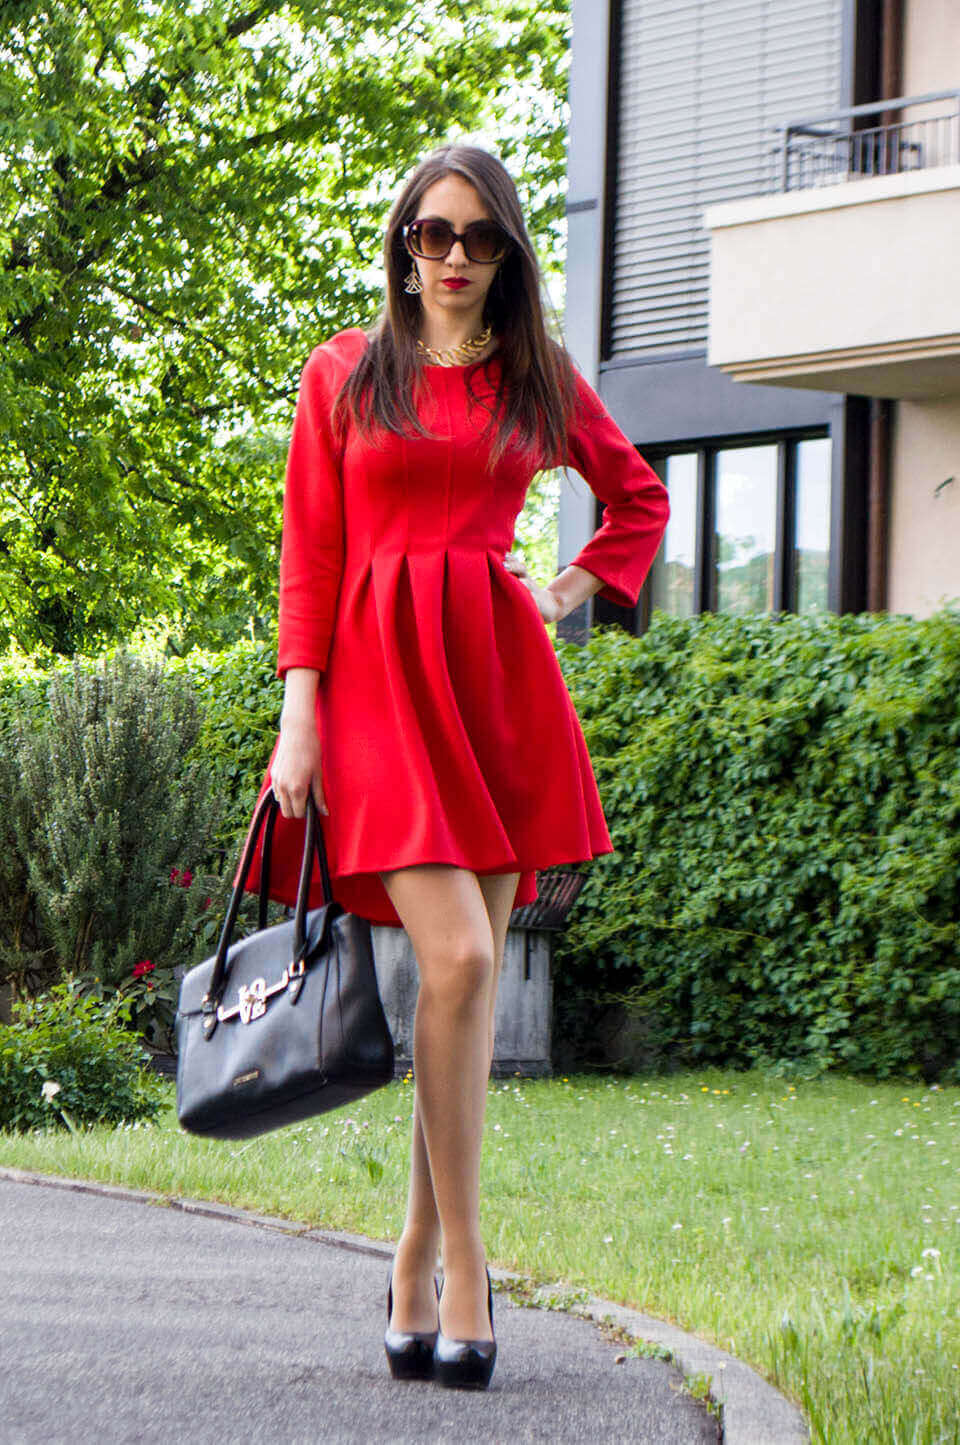 Red dress outfit - Stylewe